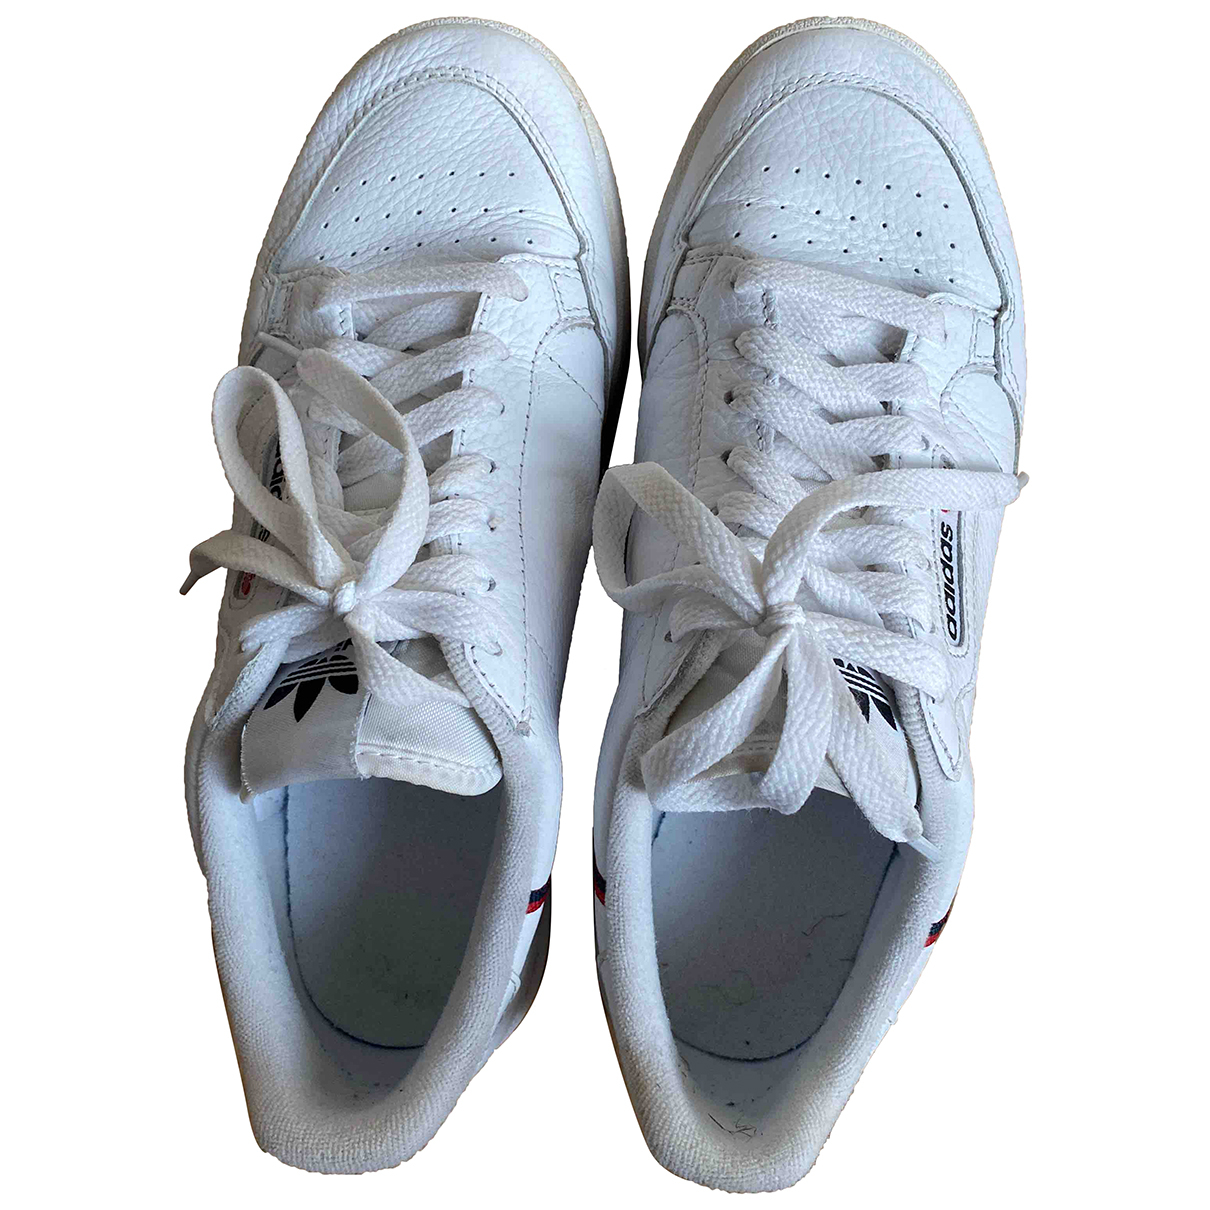 Adidas Continental 80 White Leather Trainers for Women 7 UK